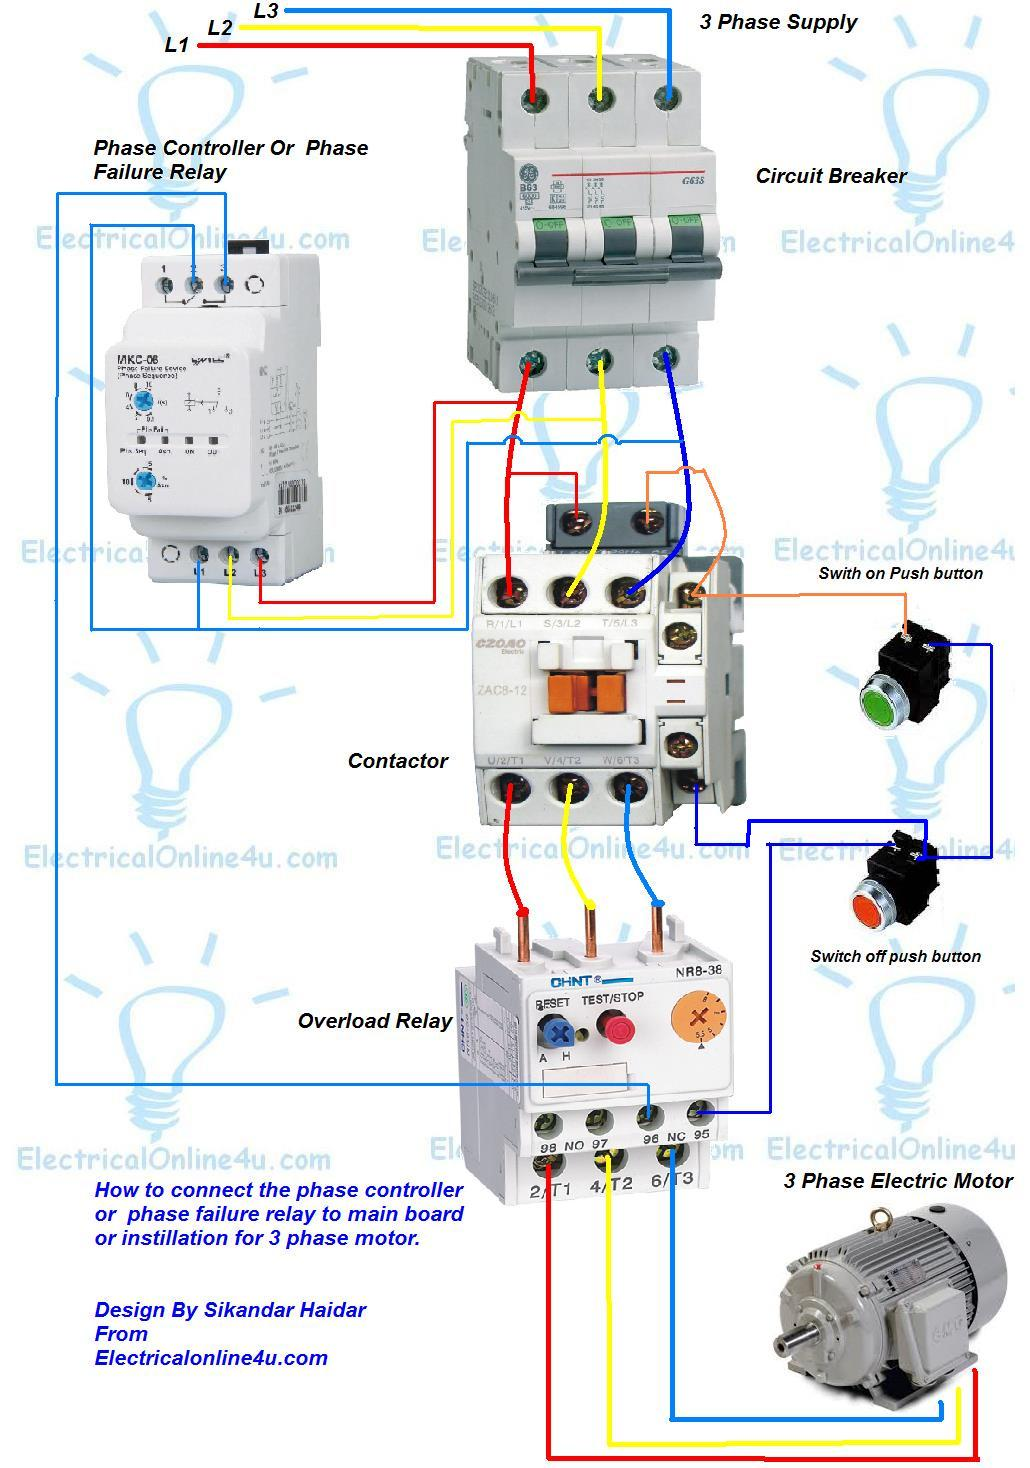 Phase%2Bfailure%2Brelay%2B %2Bphase%2Bcontroller%2Binstilaion%2Bin%2B3%2Bphase%2BMain%2Bboard%2Bor%2Bfor%2B3%2Bphase%2Bmotor wiring diagram contactor wiring wiring diagrams instruction timer contactor wiring diagram at metegol.co